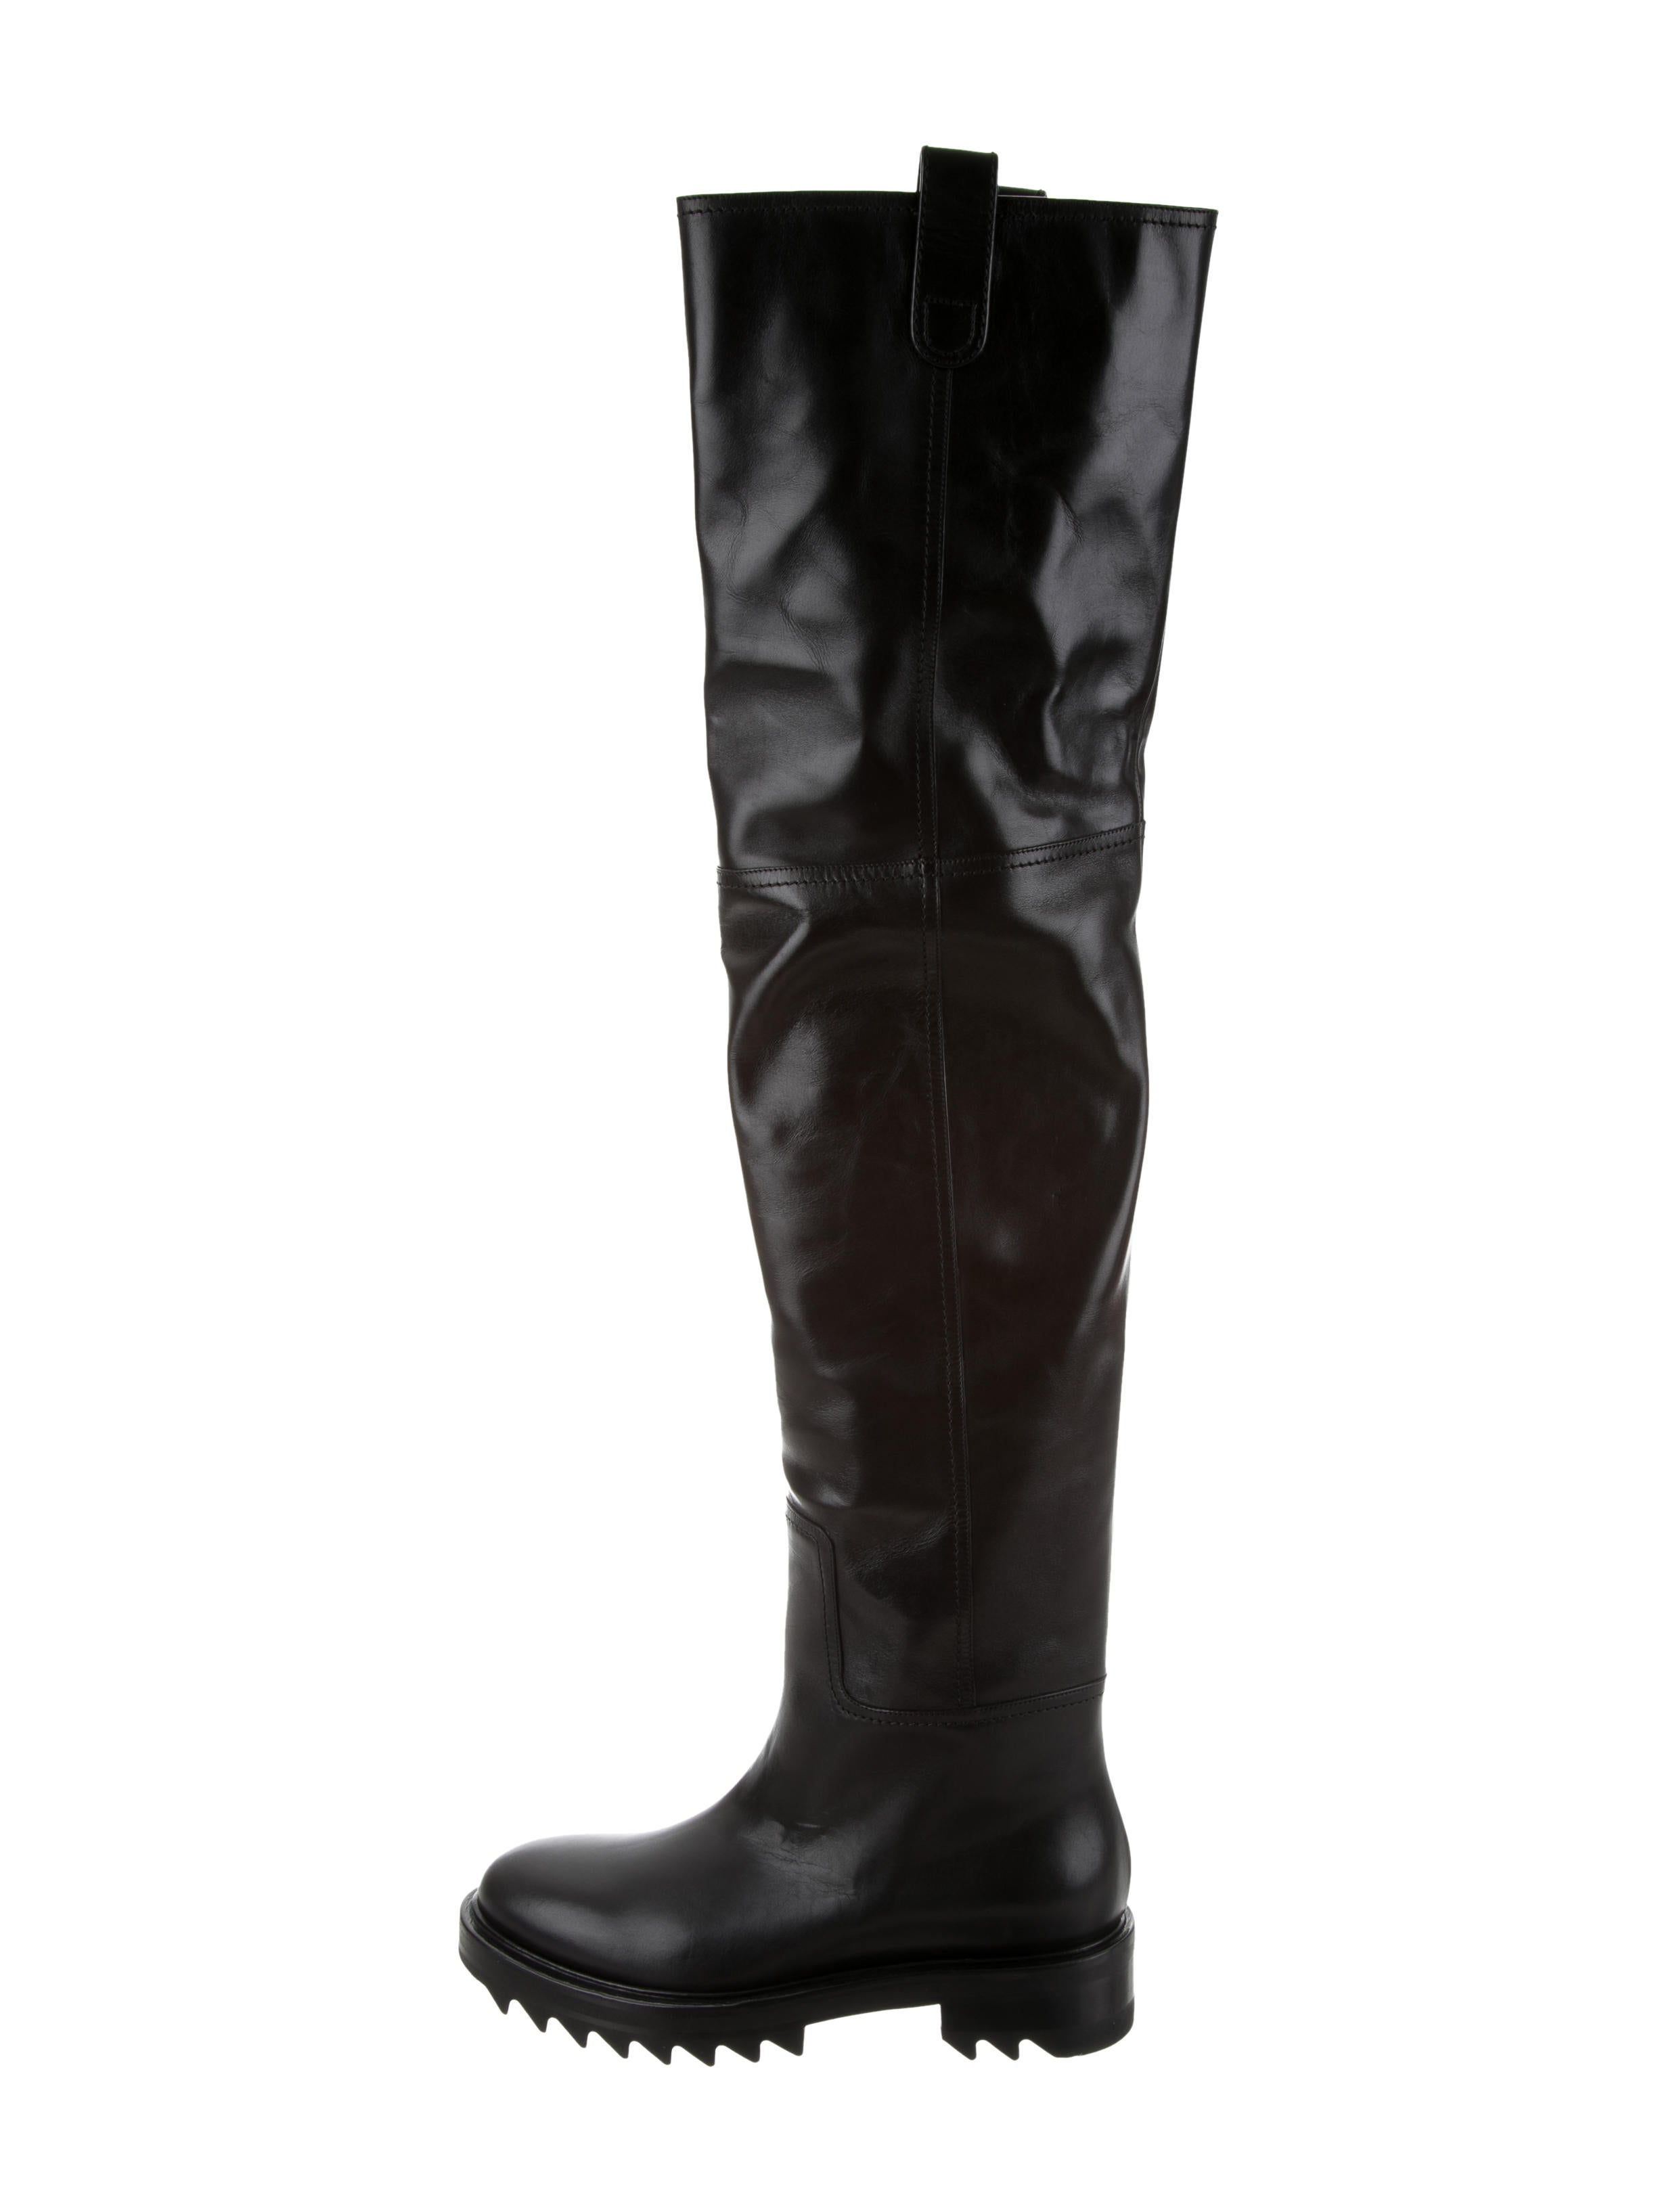 Tamara Mellon Leather Over-The-Knee Boots w/ Tags for nice cheap online buy cheap great deals BkzPgFDWx4